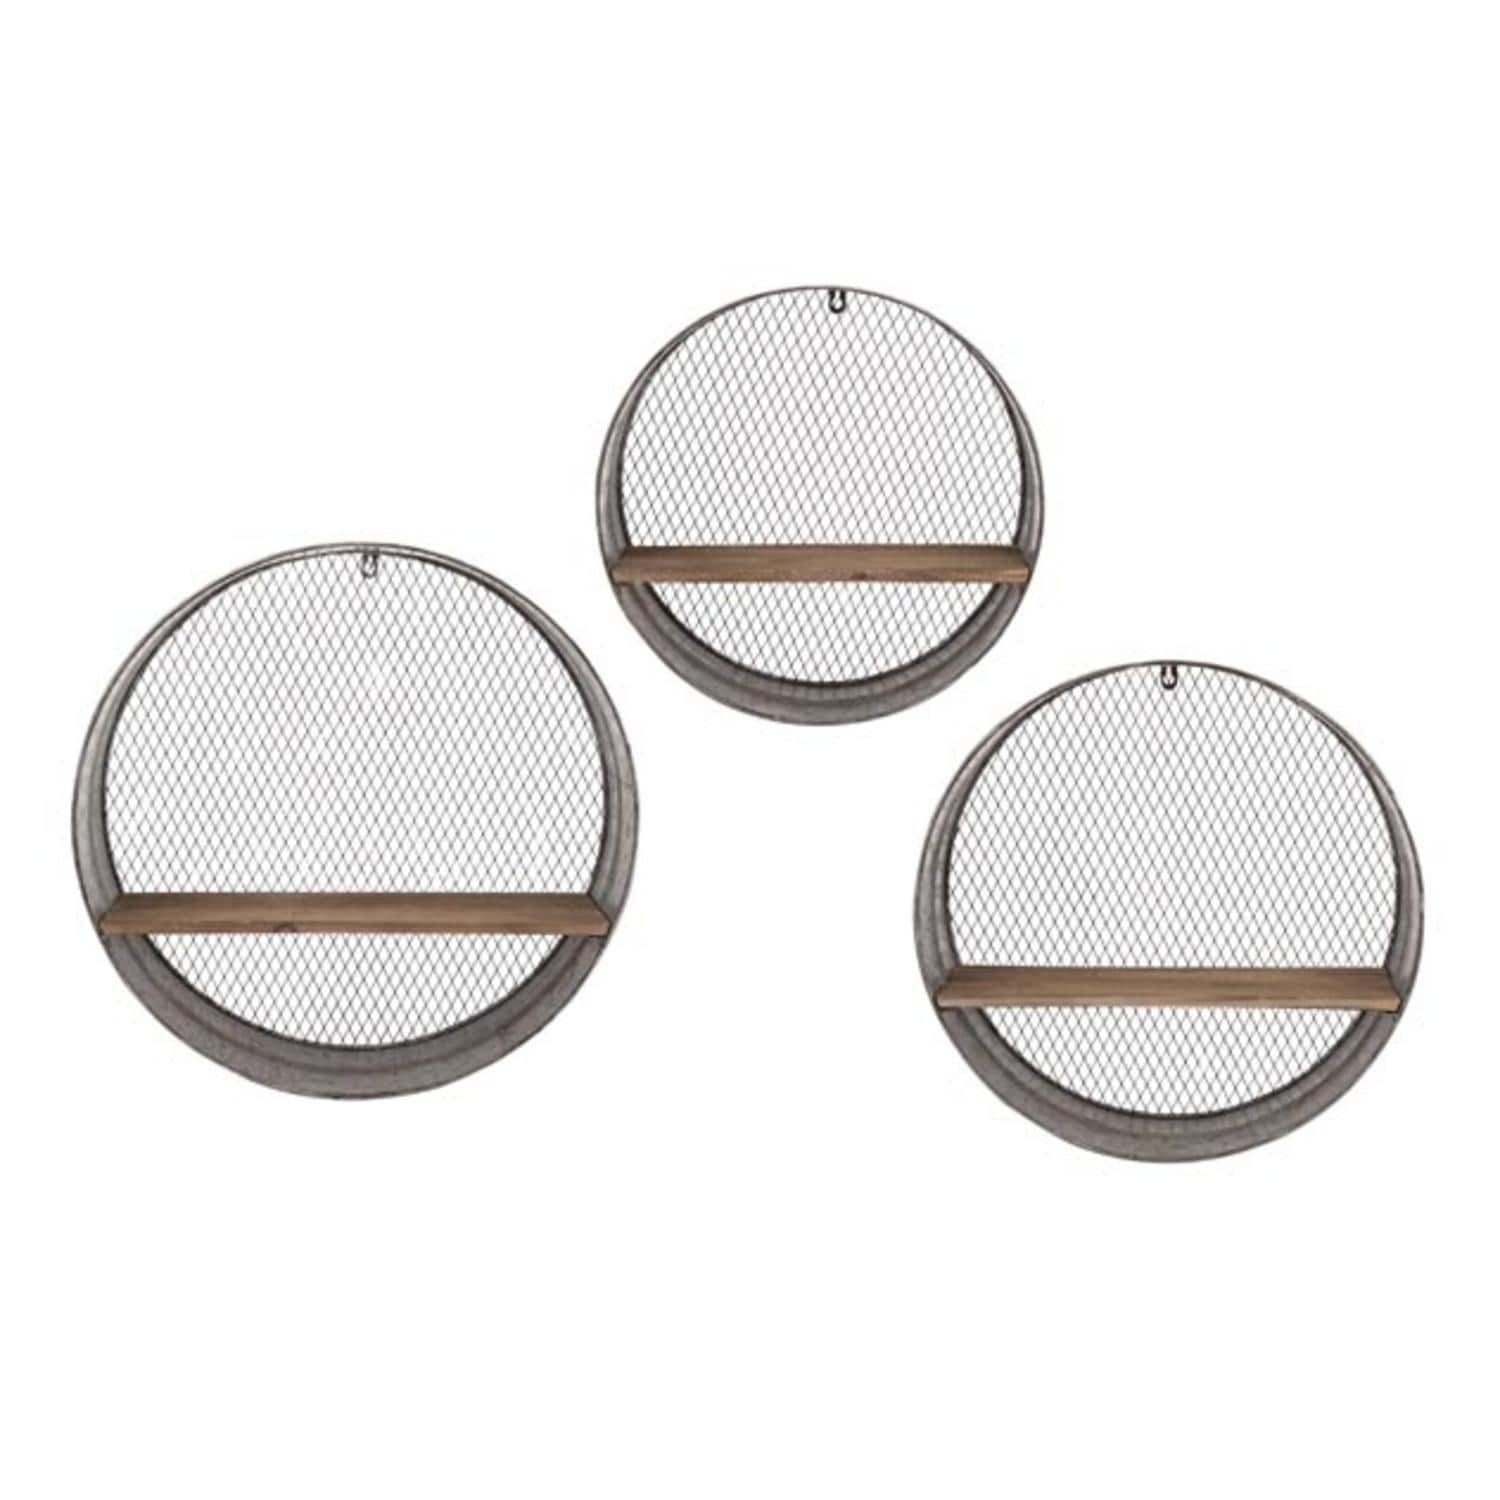 Imax set of industrial style lattice patterned round wooden wall